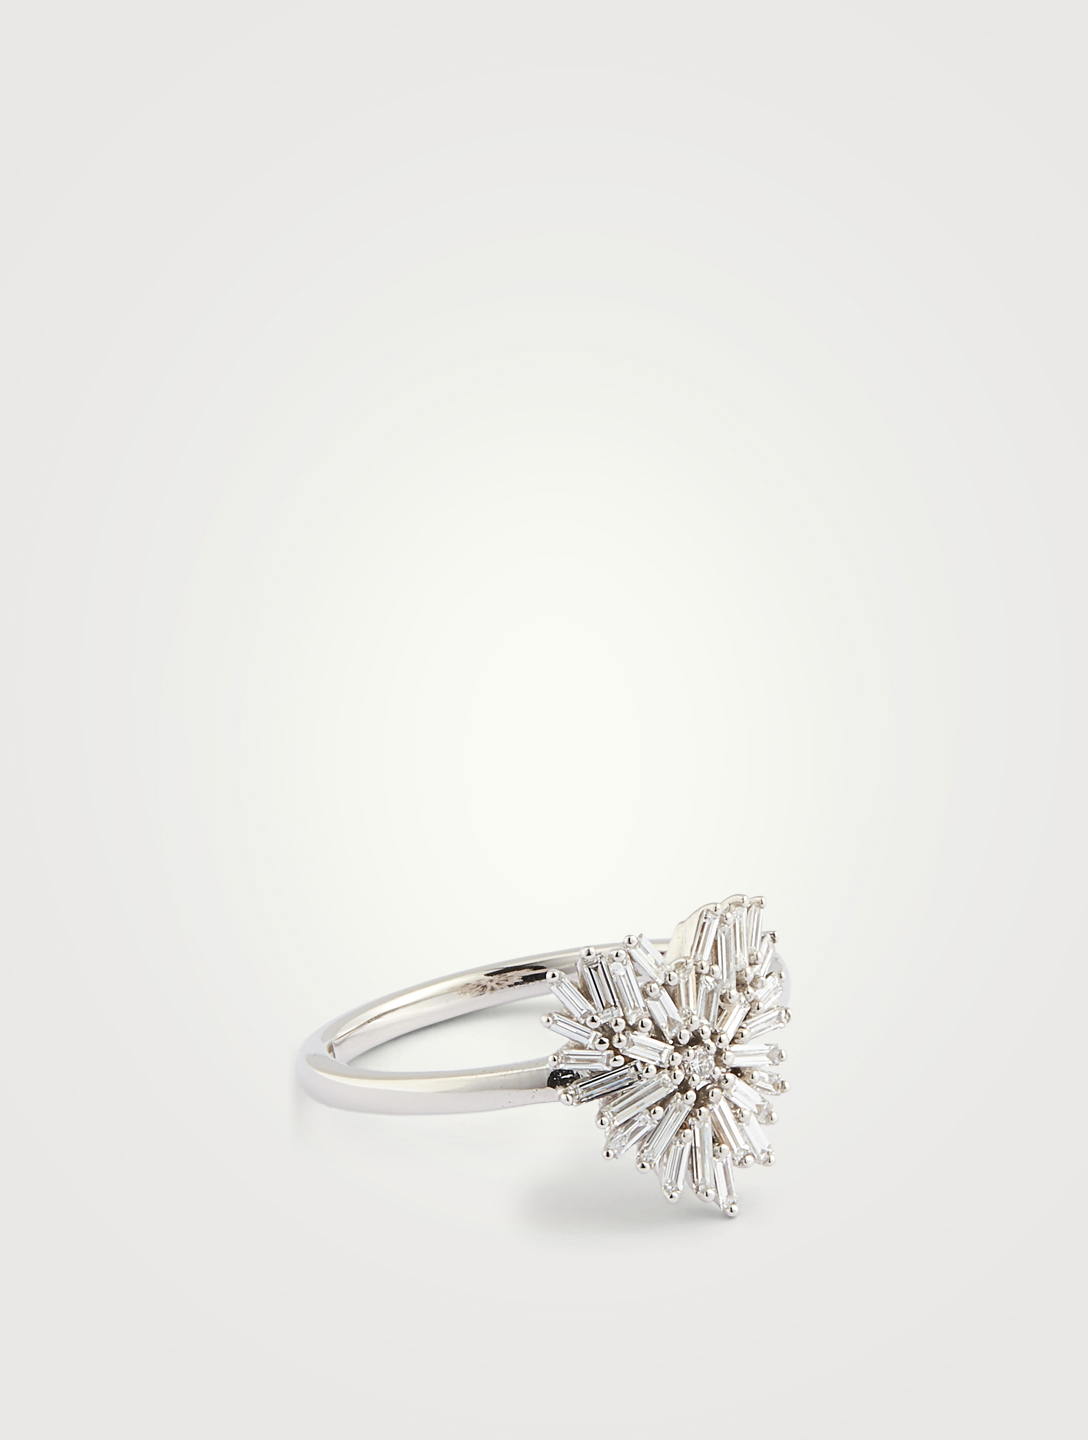 SUZANNE KALAN Mini Fireworks 18K White Gold Heart Ring With Diamonds Women's Metallic